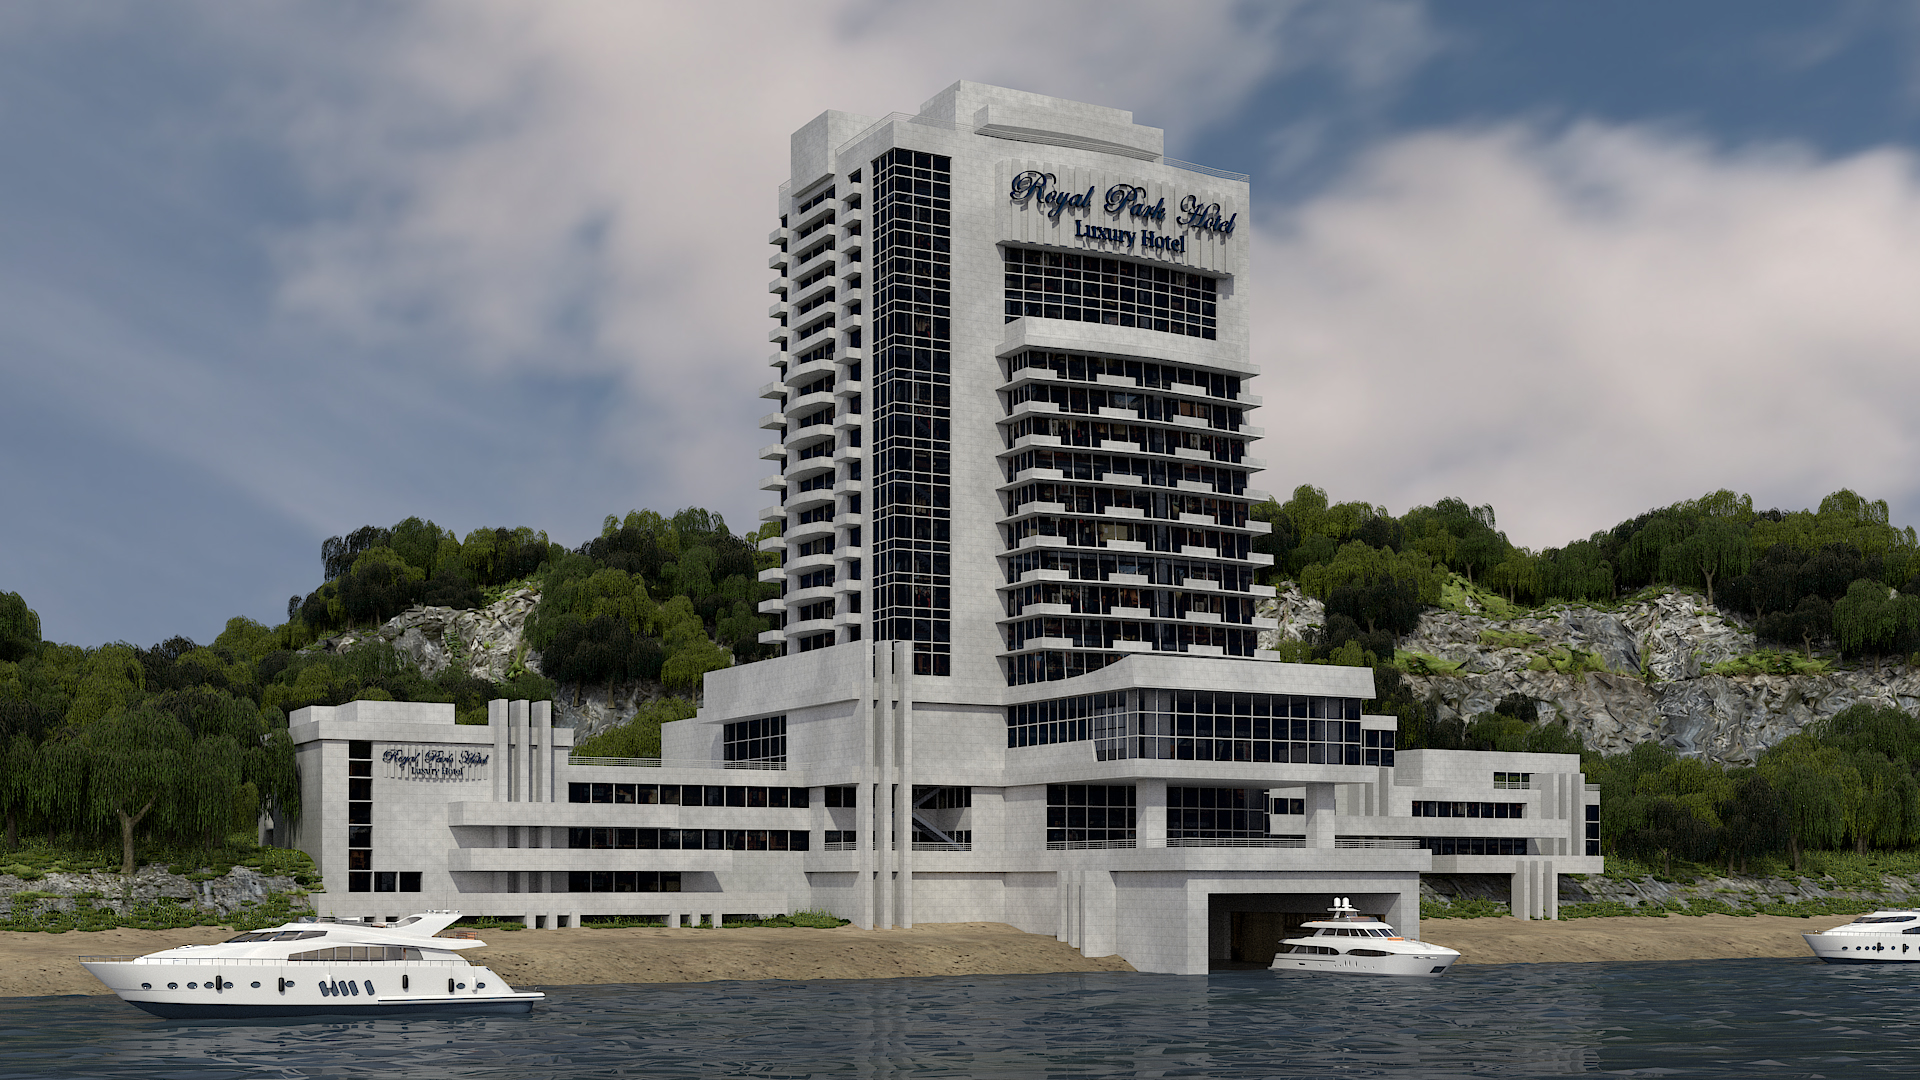 Architectural visualization | Lake hotel